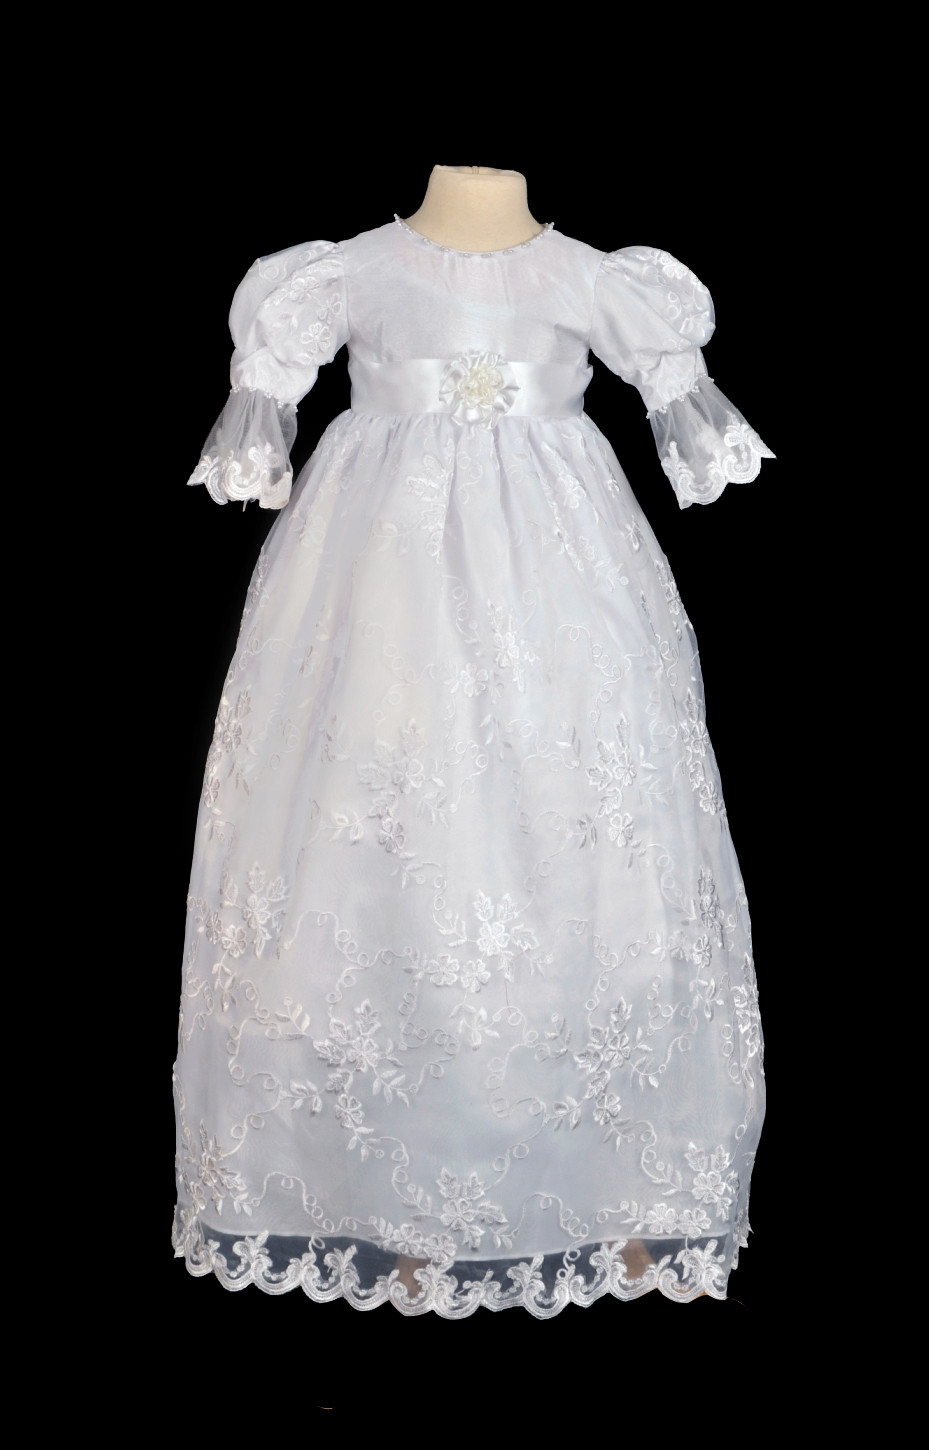 Lace Christening Dress Best Of Lace Baptism Gown I373c Sweetie Pie Collection Of Innovative 42 Images Lace Christening Dress